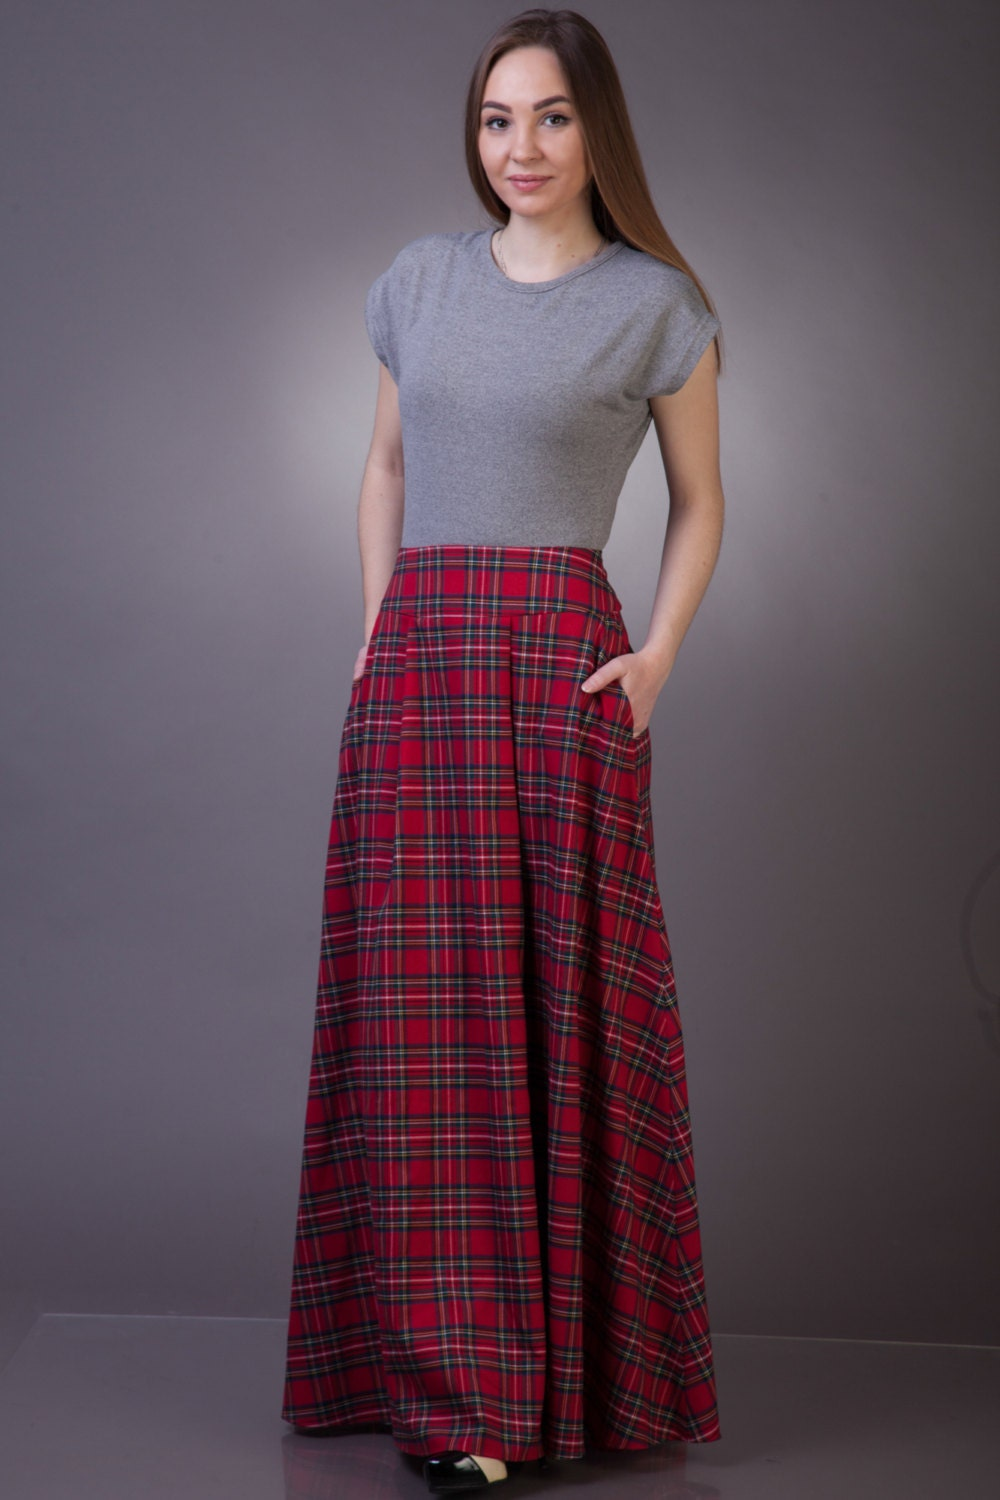 Comfort Waist Pull-On Skirt: Wide waistband and stretch denim keep you looking slimmer and feeling comfortable all day long. Skirt features classic 5-pocket styling and a back vent for room to move. Skirt features classic 5-pocket styling and a back vent for room to move.